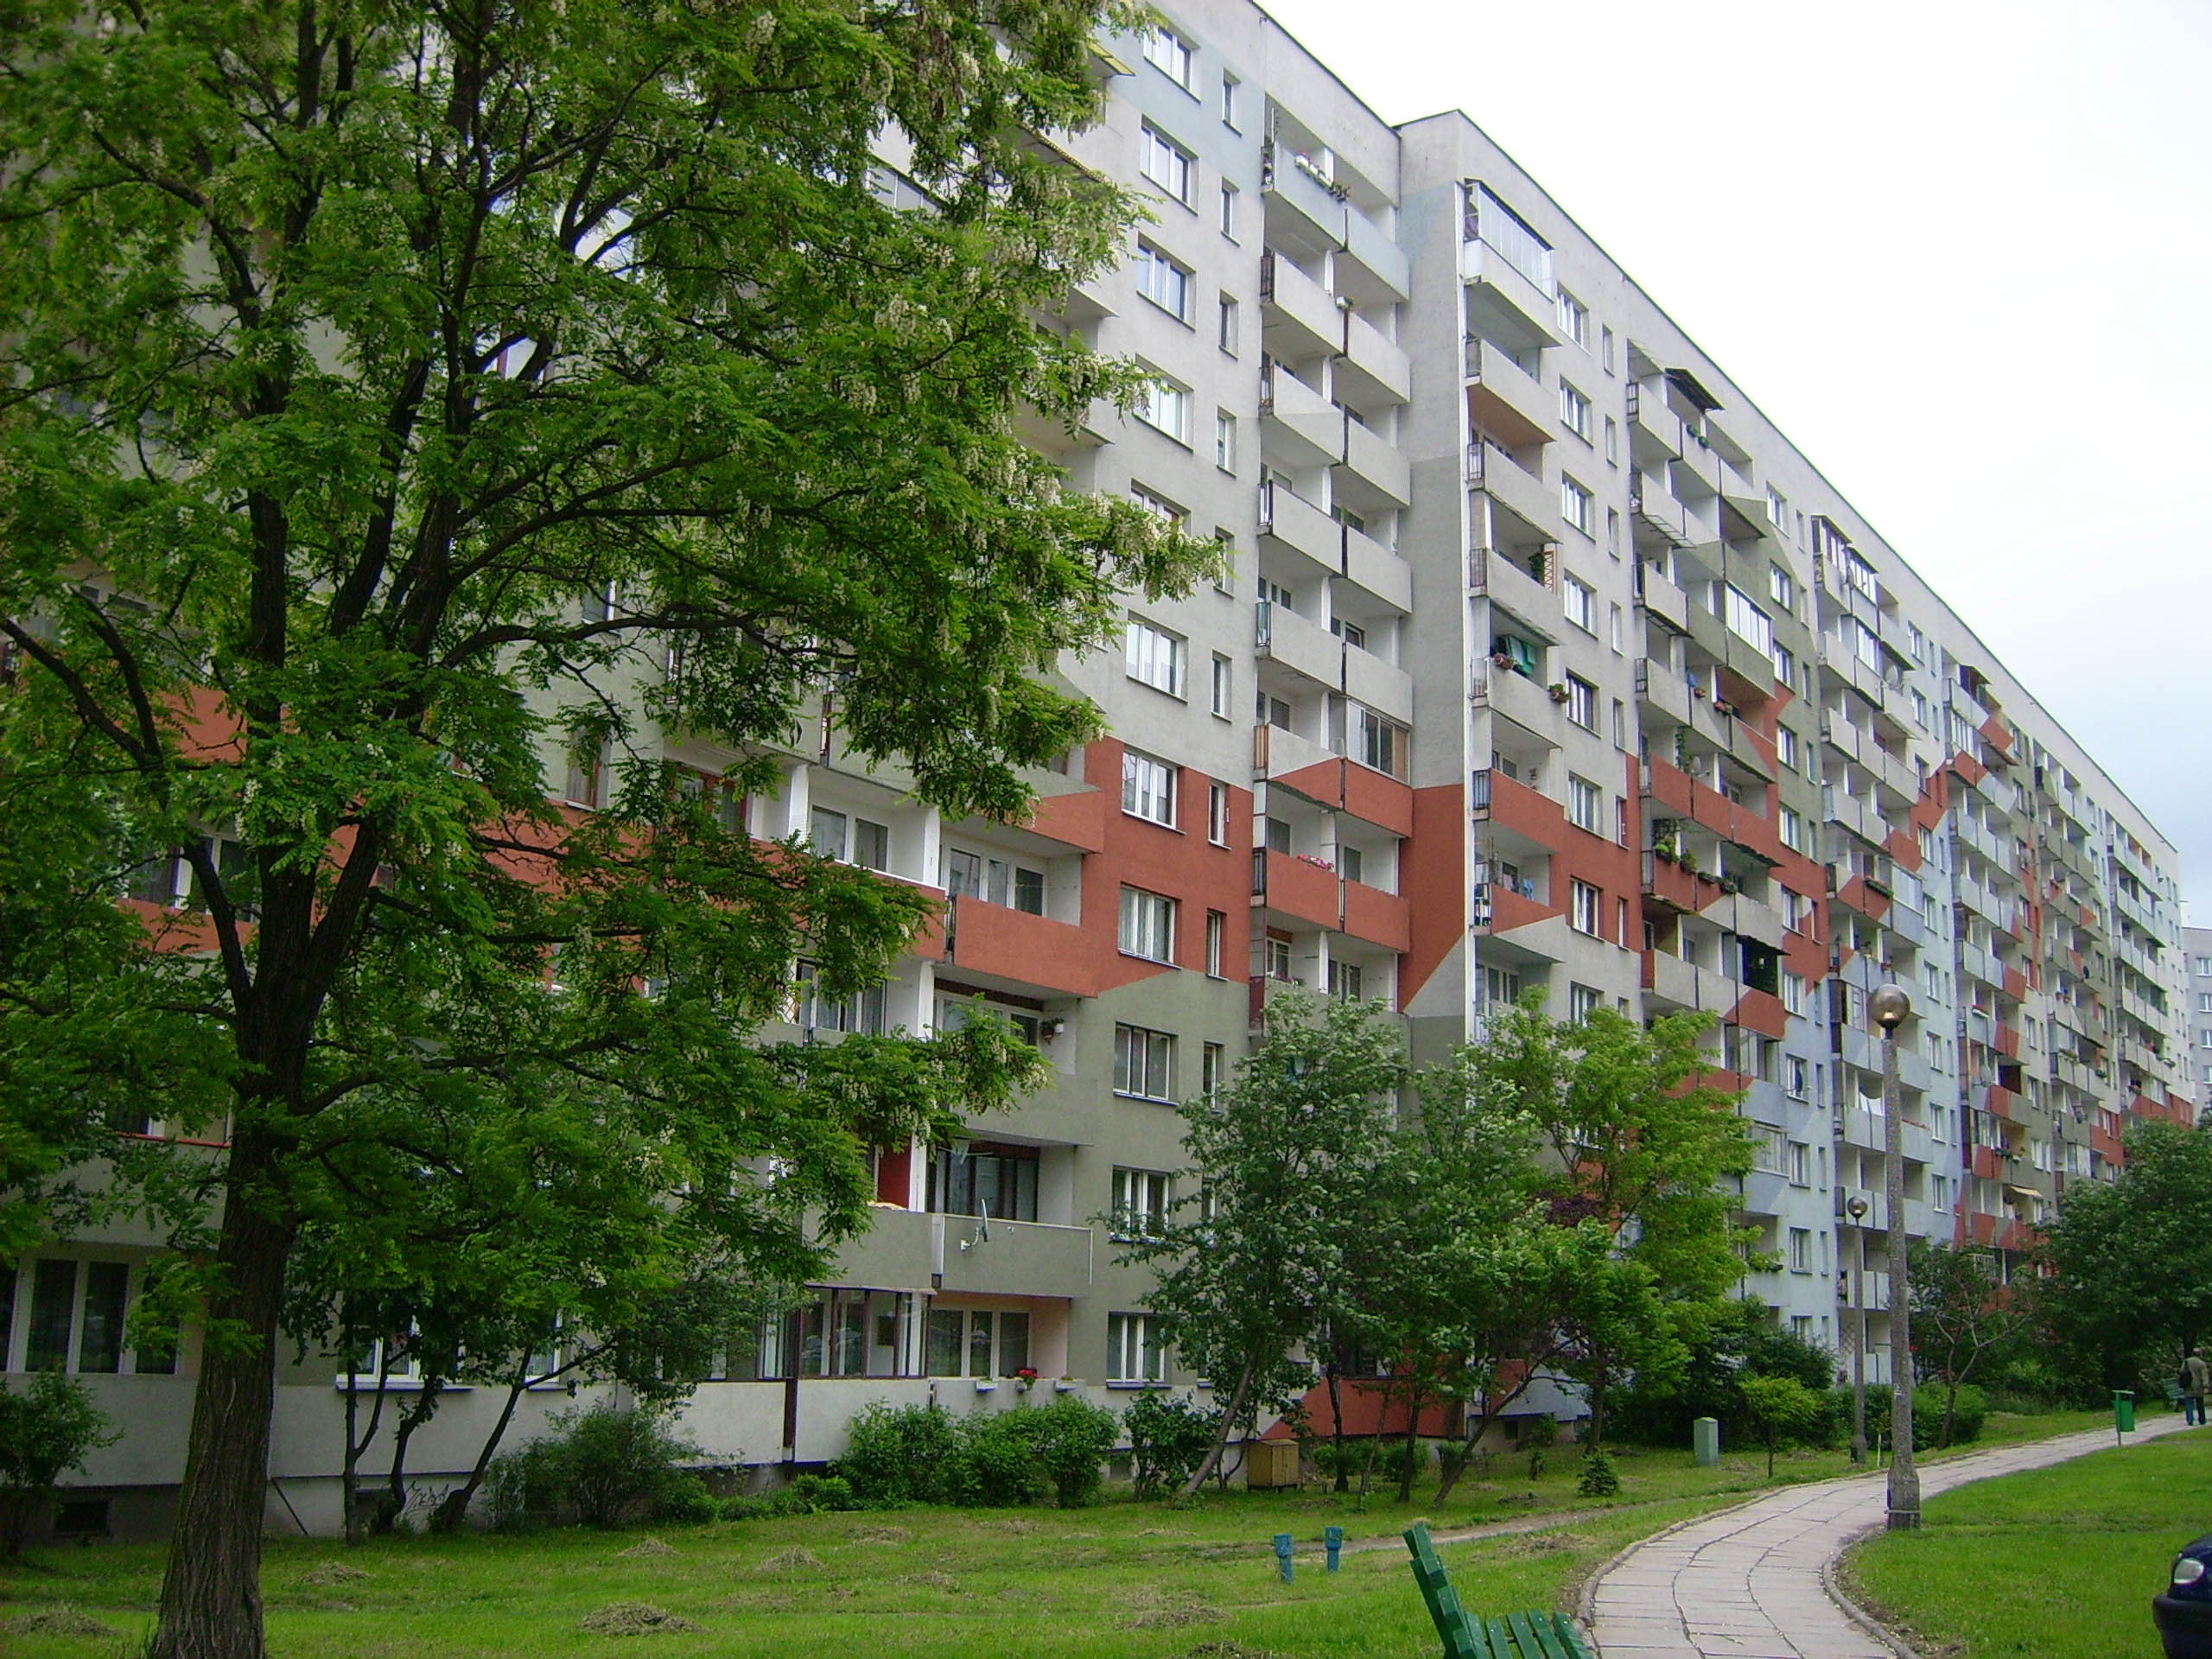 A block of flats in Os. Piaski Nowe, in Podgorze. Residents say the city has mismanaged the infrastructure surrounding new construction